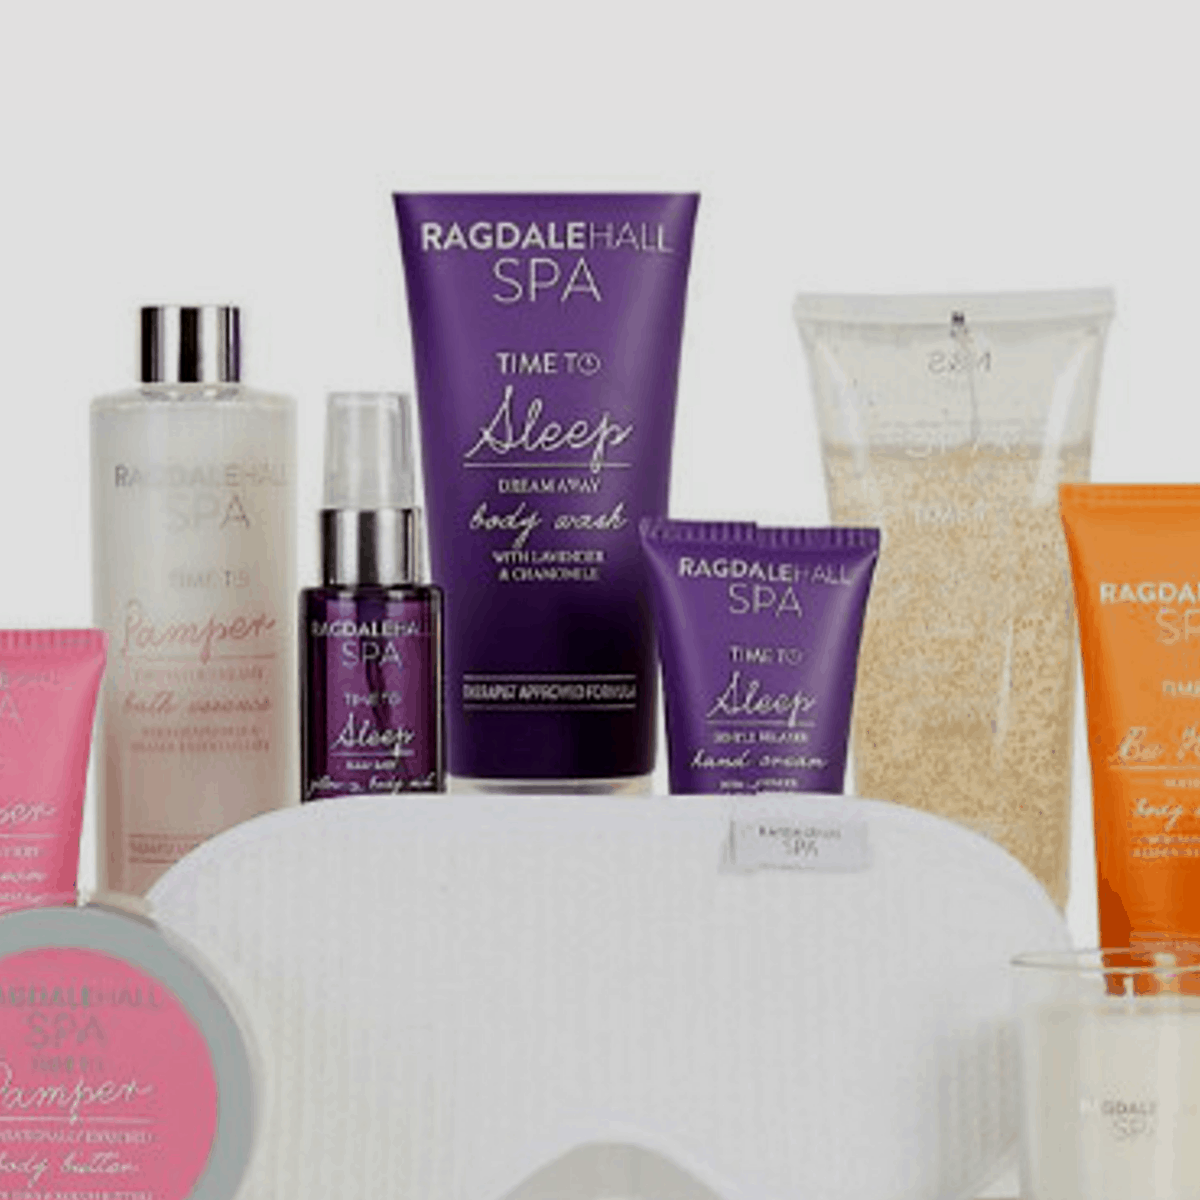 M&S Spa Range